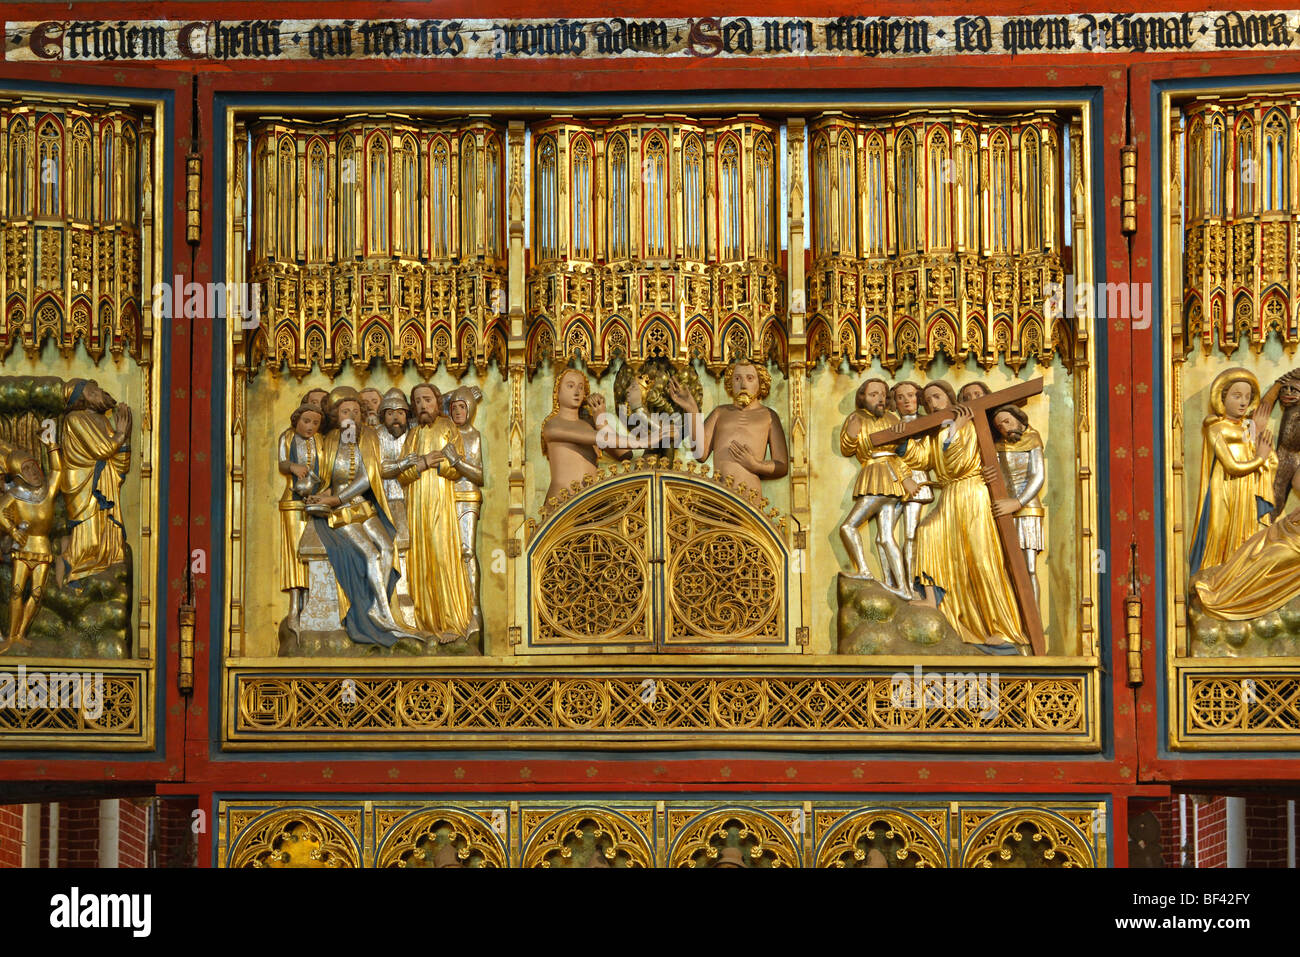 Biblical depictions on the side of Christ cross altar, Muenster Bad Doberan, Mecklenburg-Western Pomerania, Germany - Stock Image